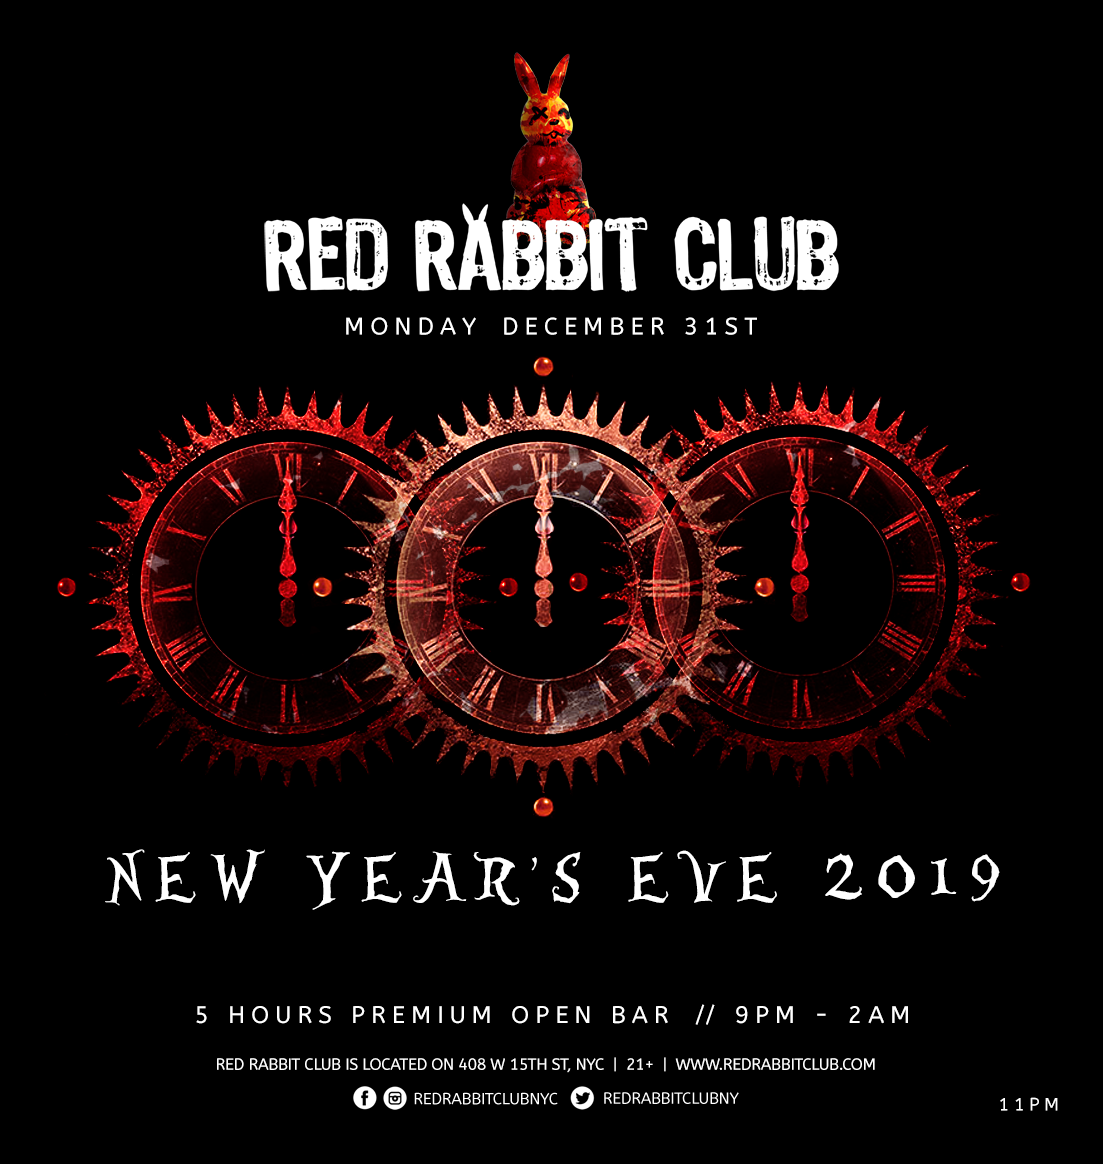 Red Rabbit Club - New Year's Eve 2019 - 5 Hours premium open bar